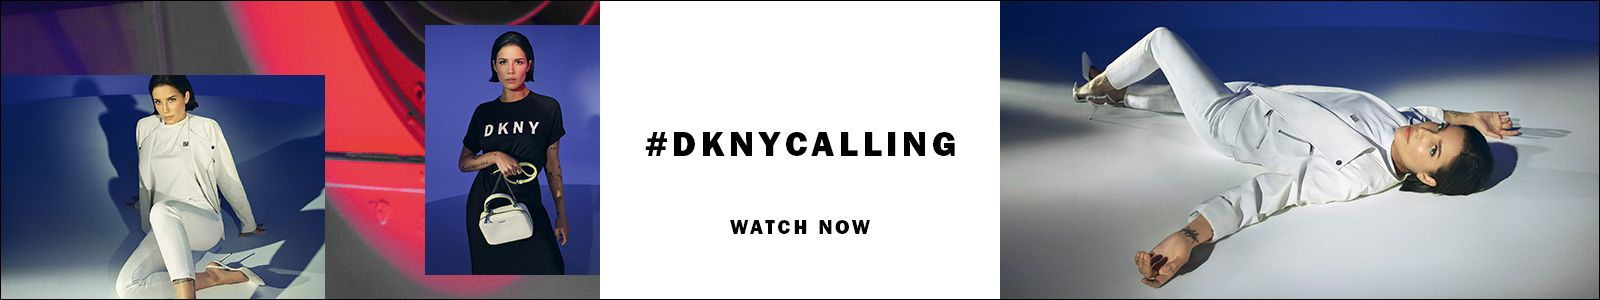 #Dknycalling, Watch Now